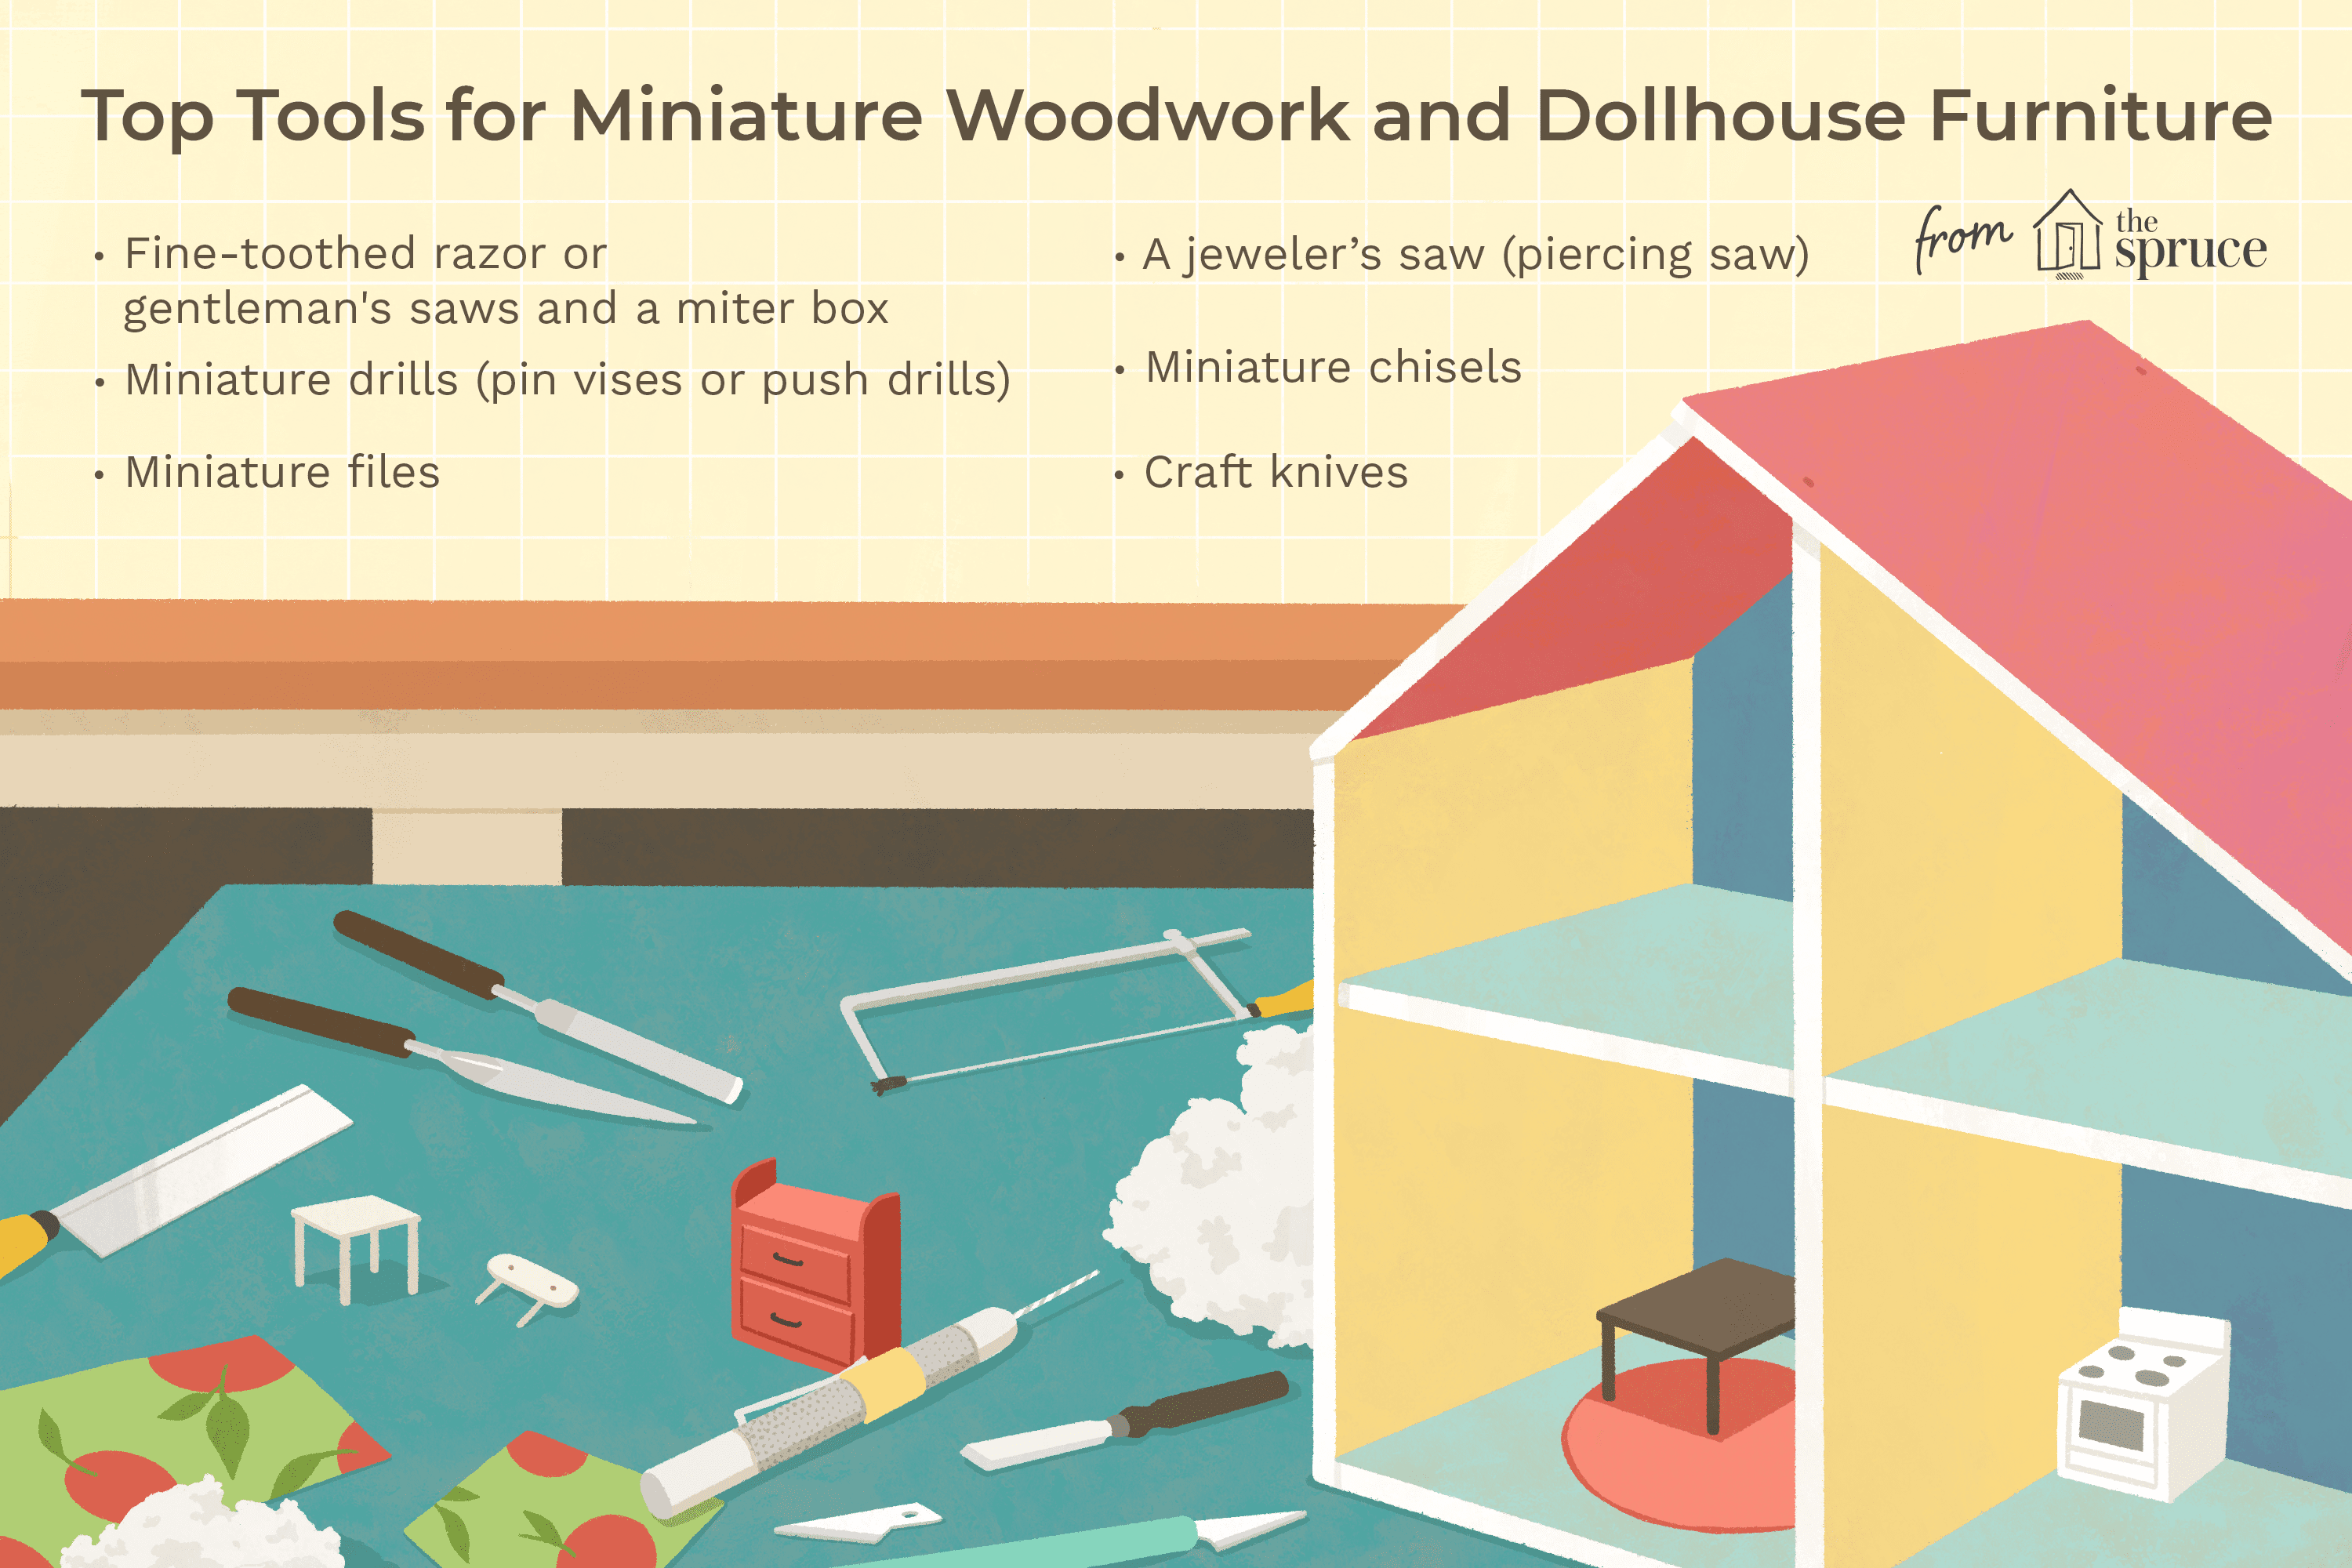 top tools for miniature woodwork and dollhouse furniture